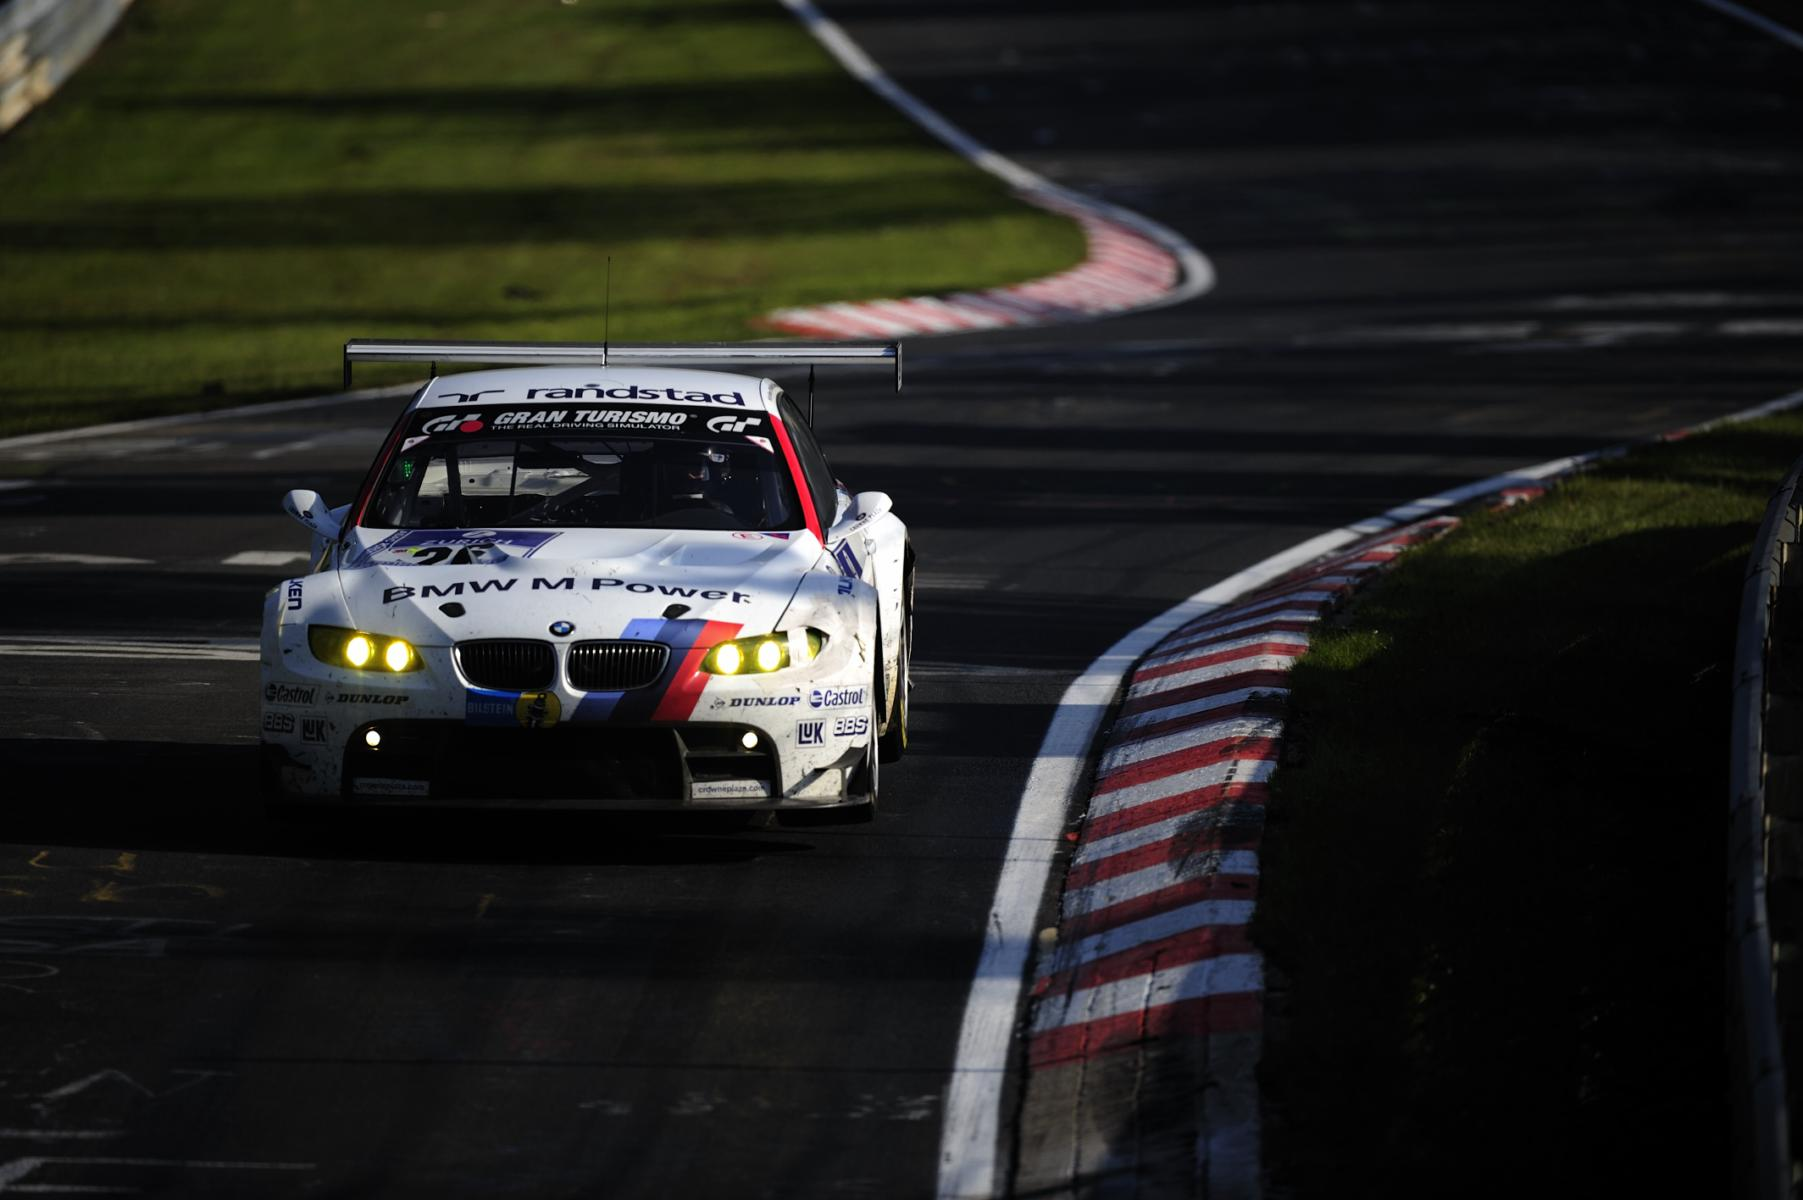 Bmw Motorsport Wins The 24 Hour Race At The N 252 Rburgring